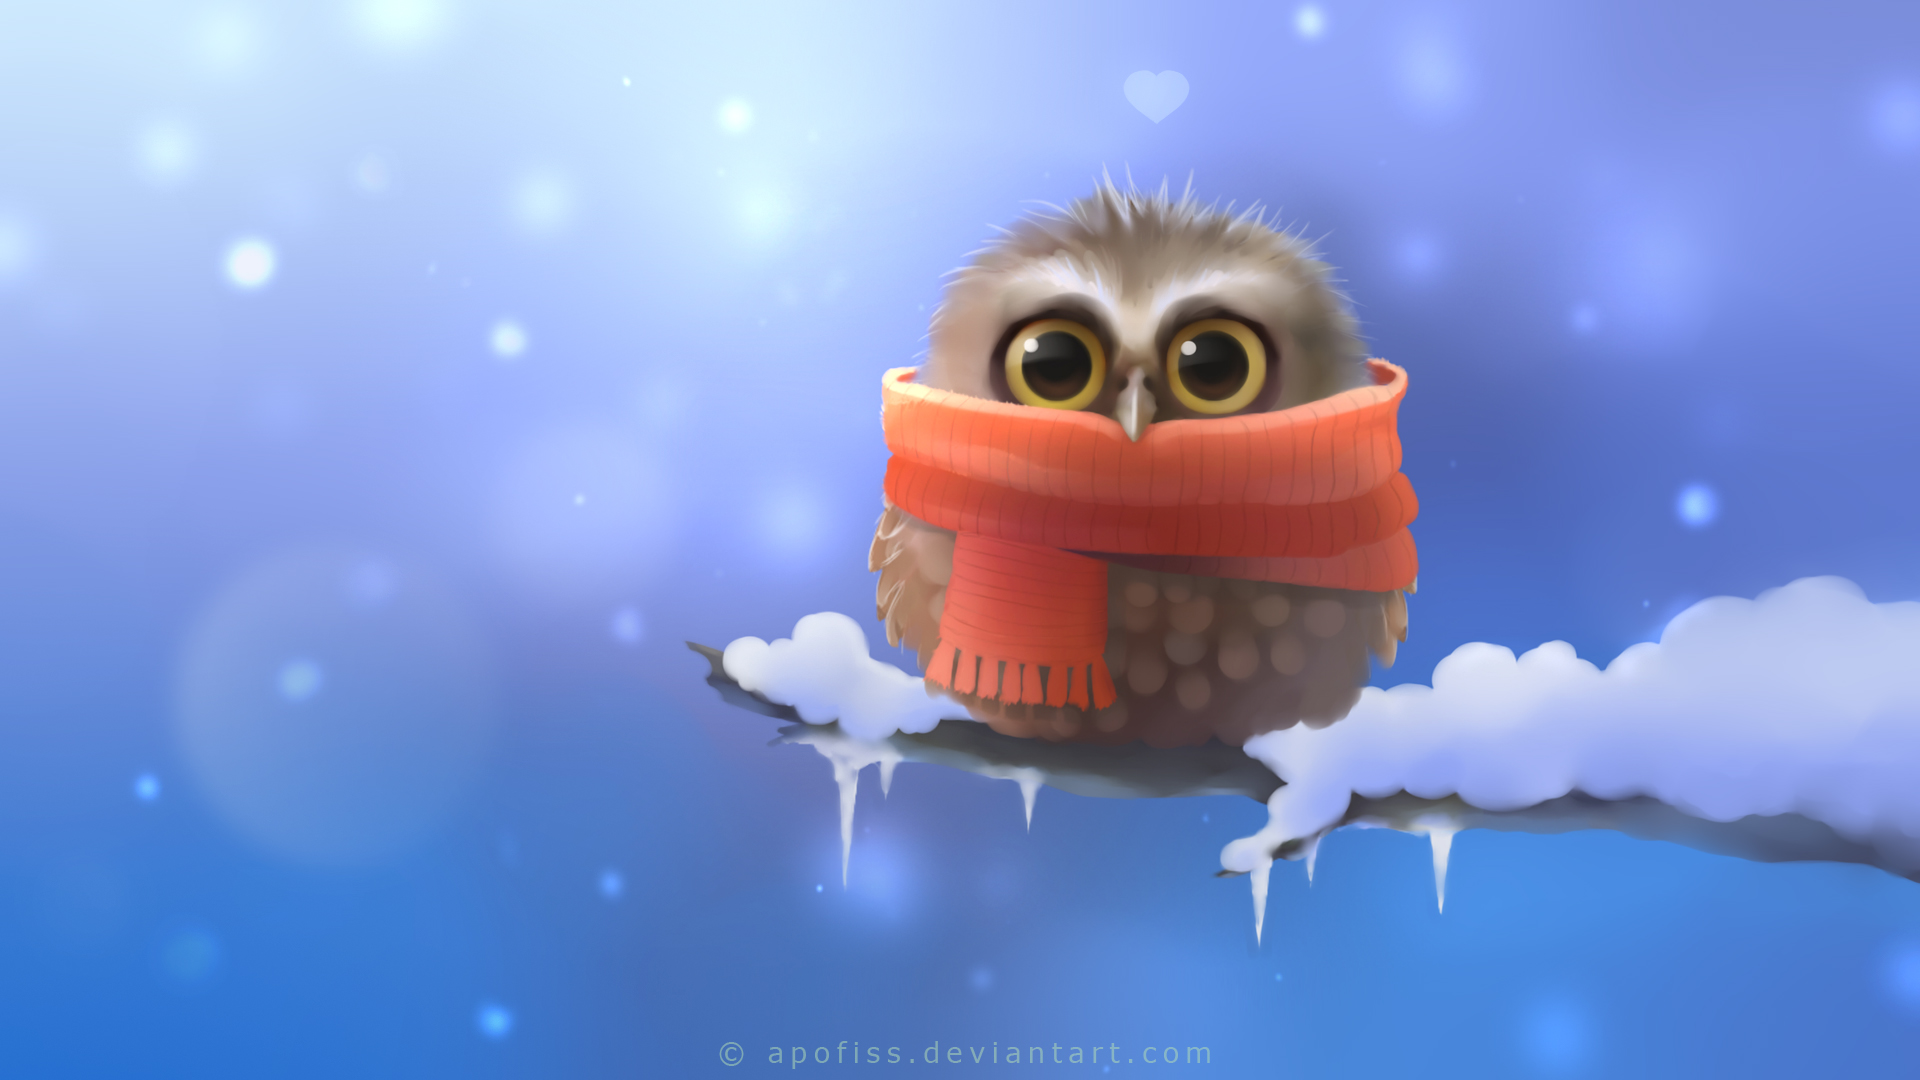 Snow Winter Drawing Scarf cartoon cute eyes pov wallpaper background 1920x1080